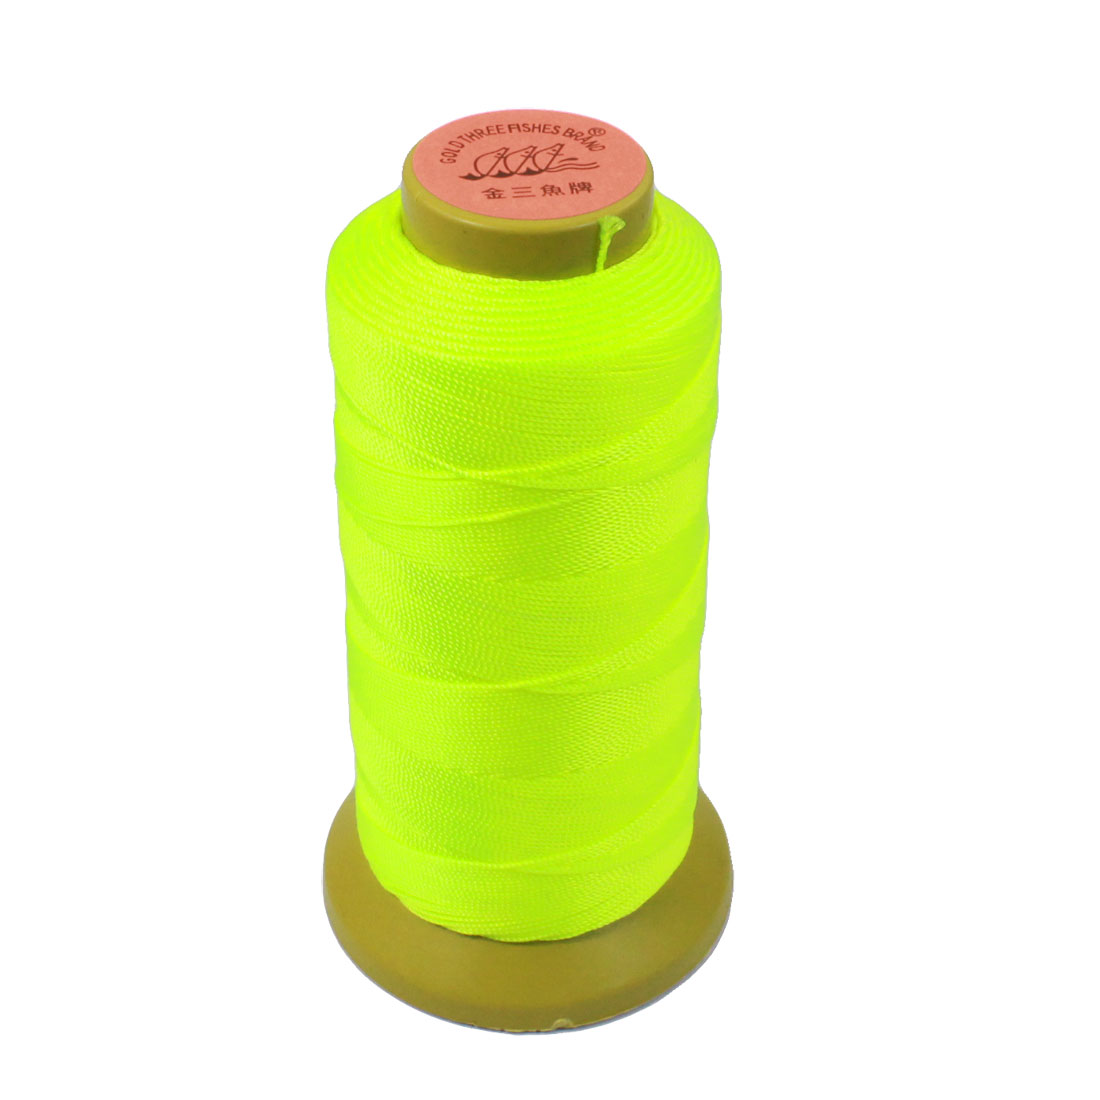 Tailor Hand Embroidery Yellow Green 9# Sewing Quilting Thread Spool Reel Roll